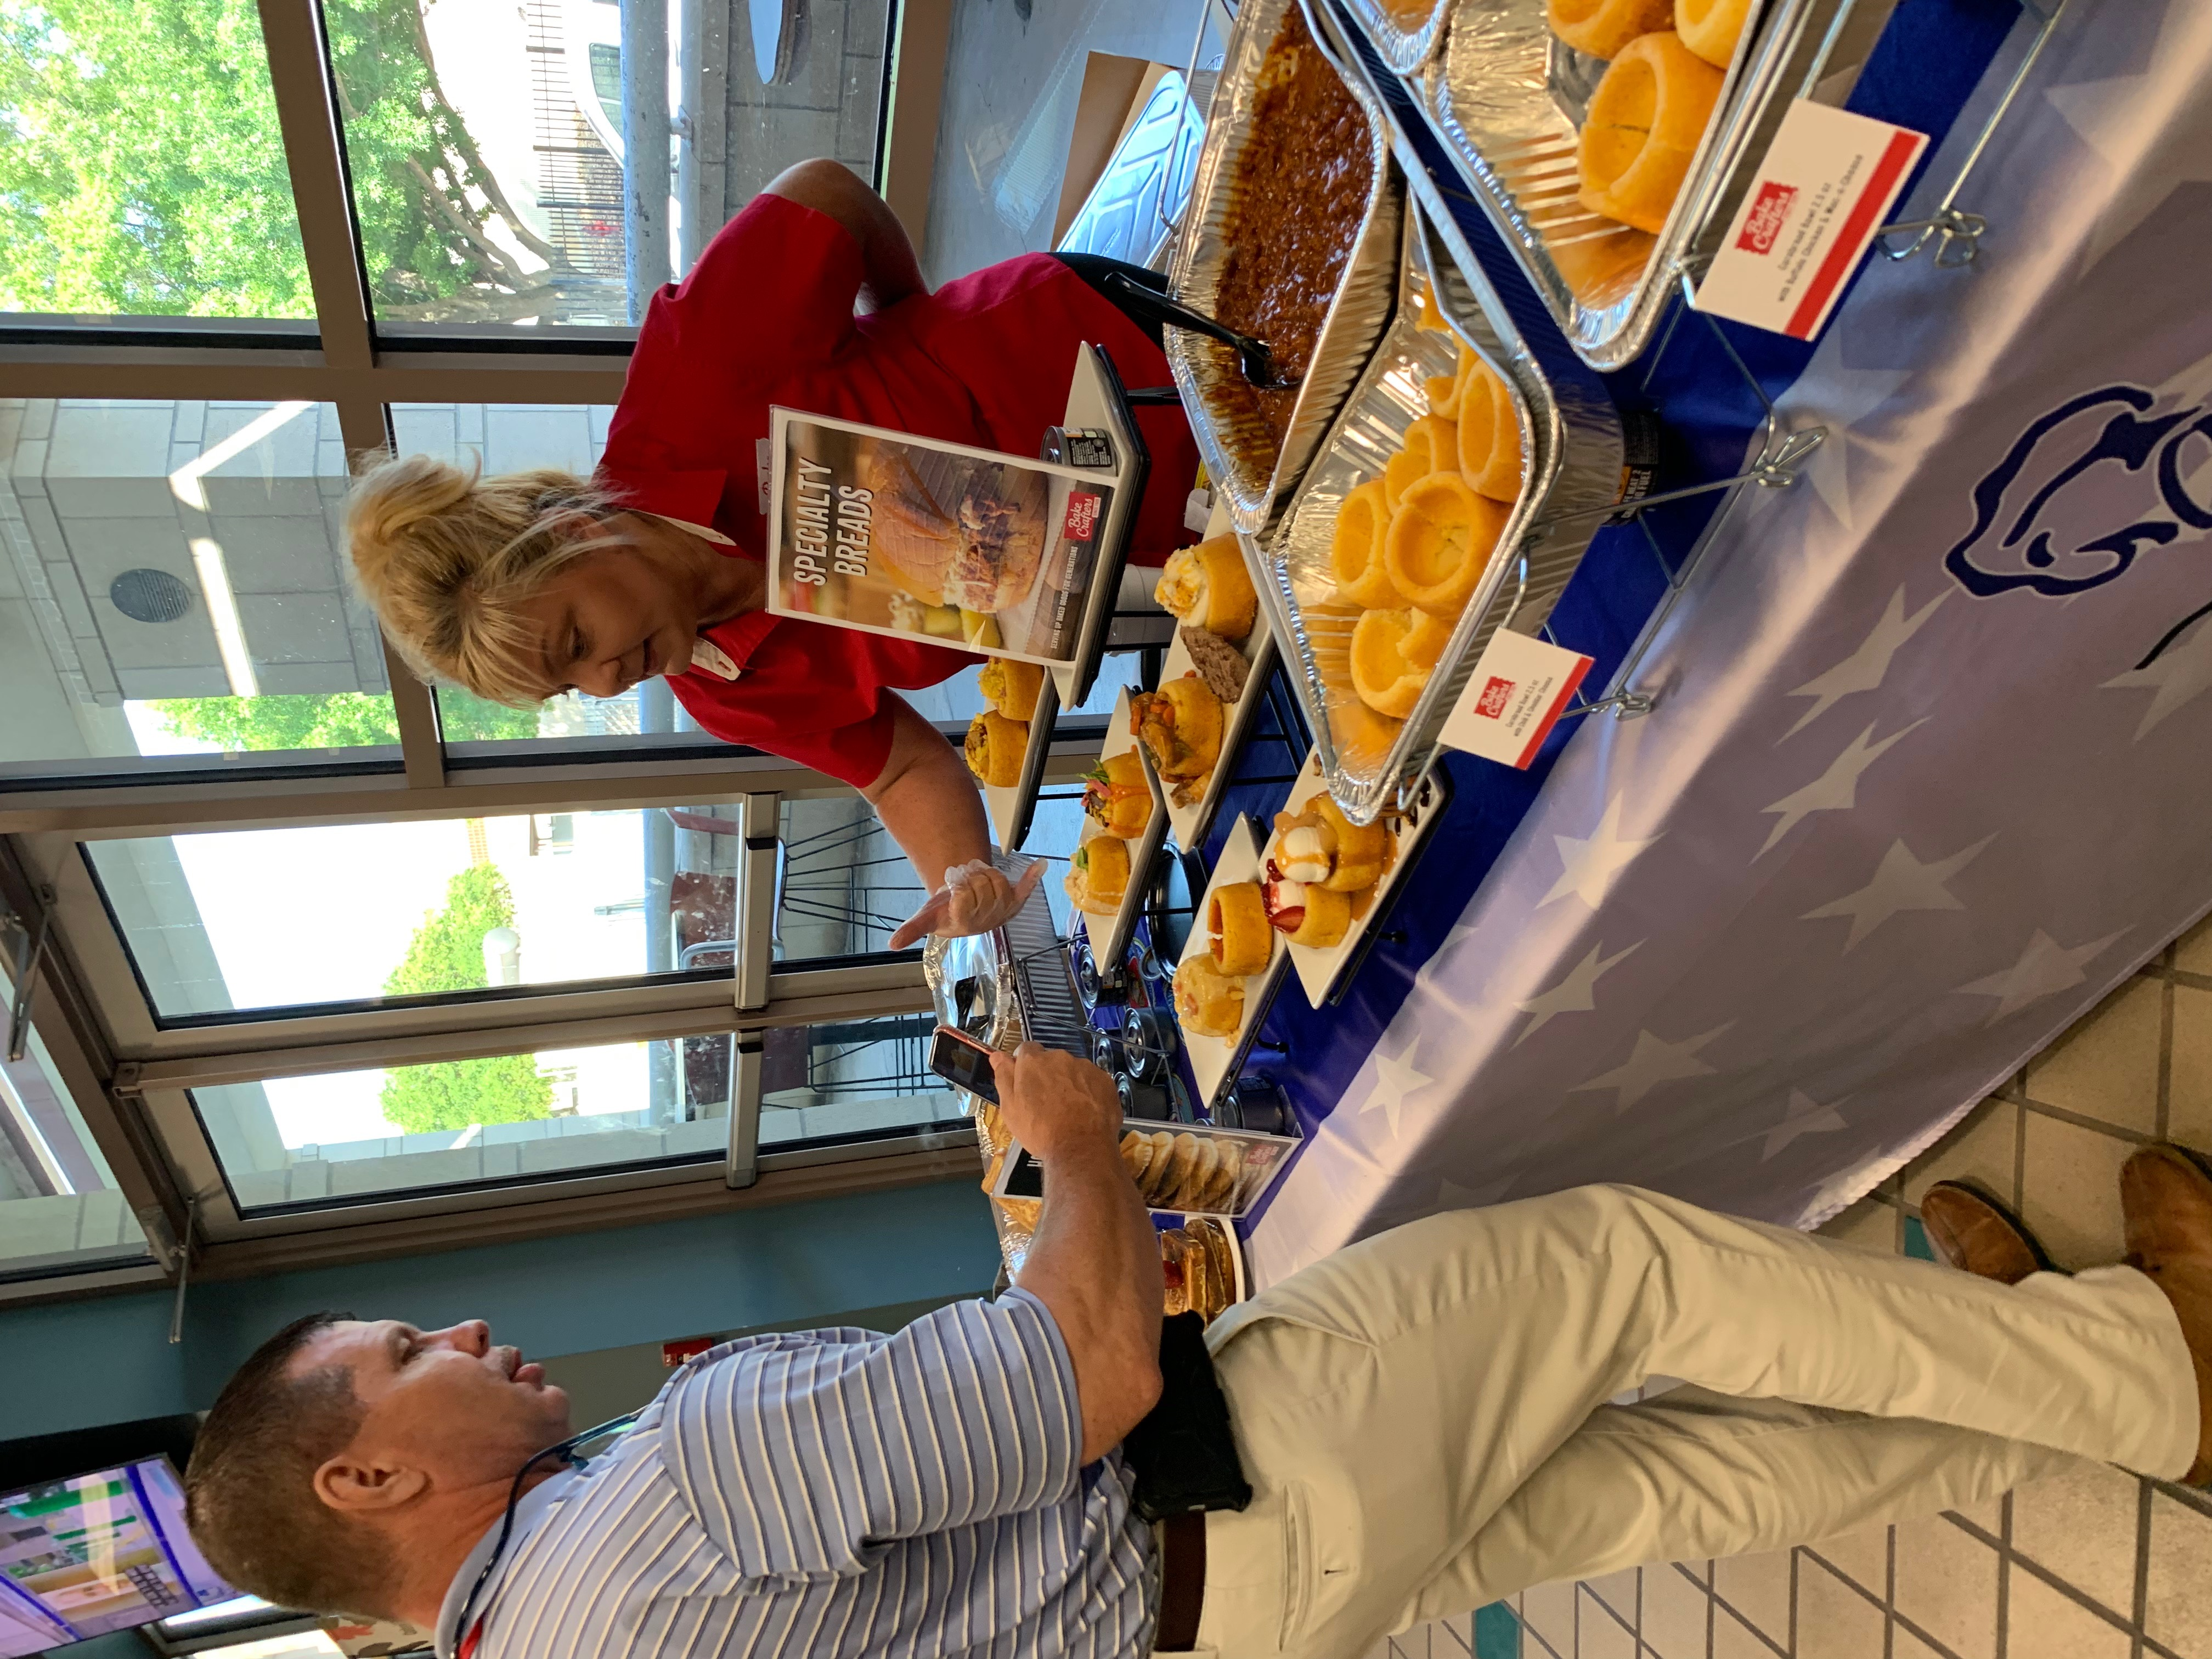 Jolynn Linder of Bake Crafters explaining the Cornbread concept and versatility of the product to Tom, customer from the Agency.